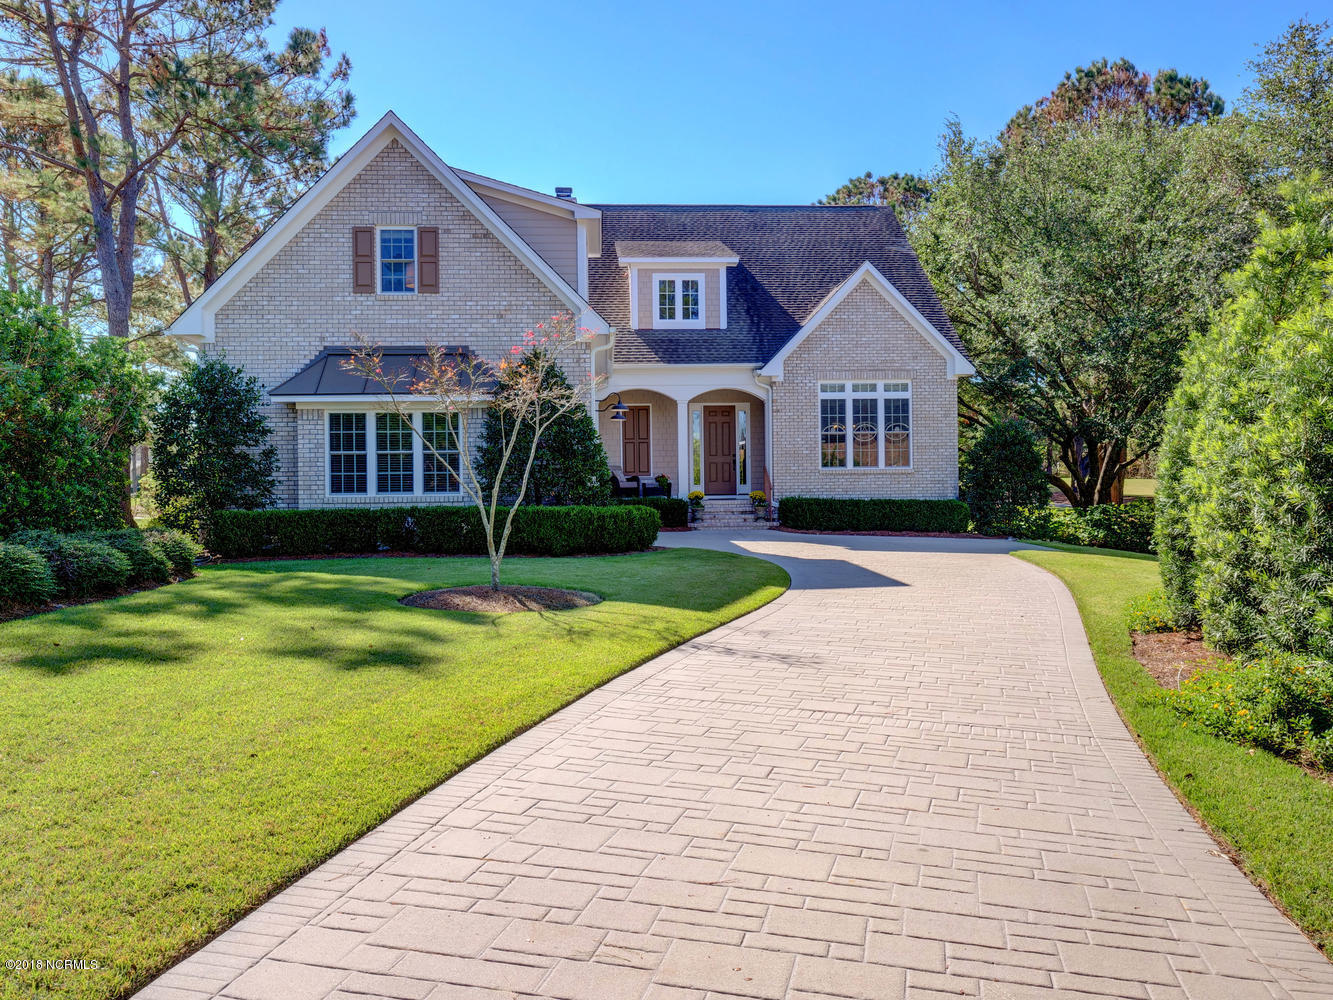 8594 Galloway National Drive, Wilmington, North Carolina, 3 Bedrooms Bedrooms, 11 Rooms Rooms,3 BathroomsBathrooms,Single family residence,For sale,Galloway National,100138682